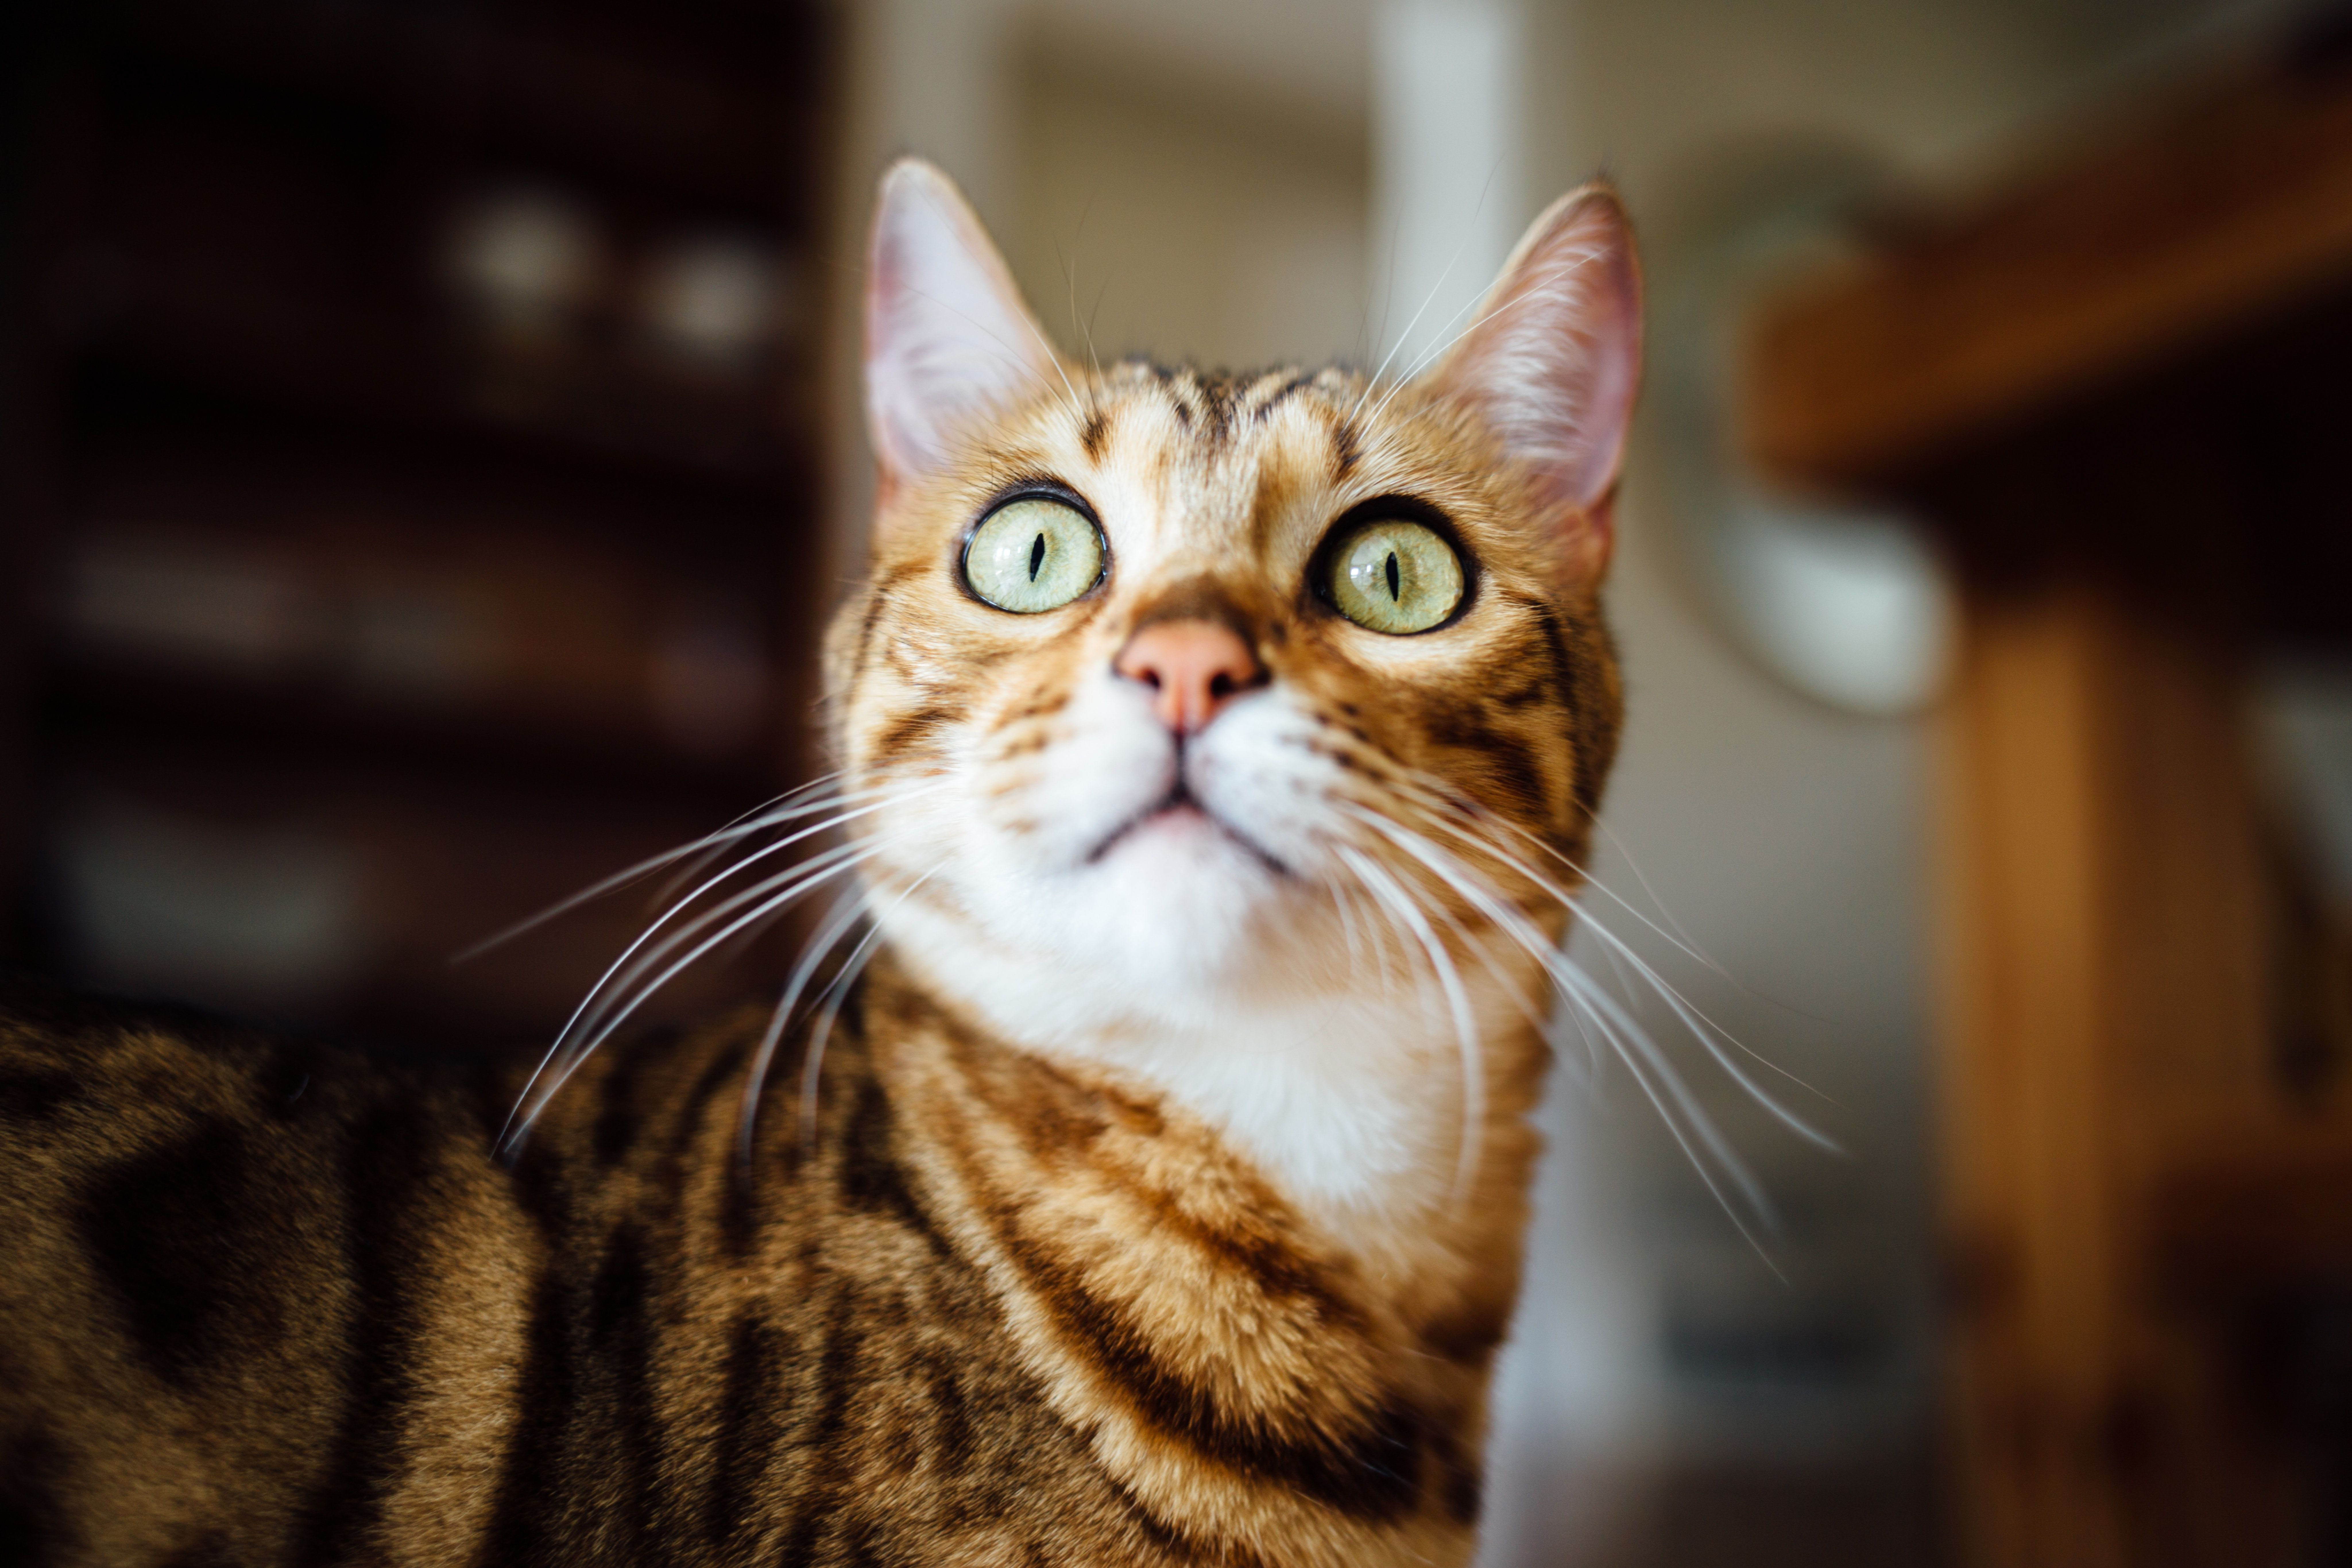 Close Up Of A Ginger Cat S Eyes Growing Wide Cat Sneezing Cats Cat Care